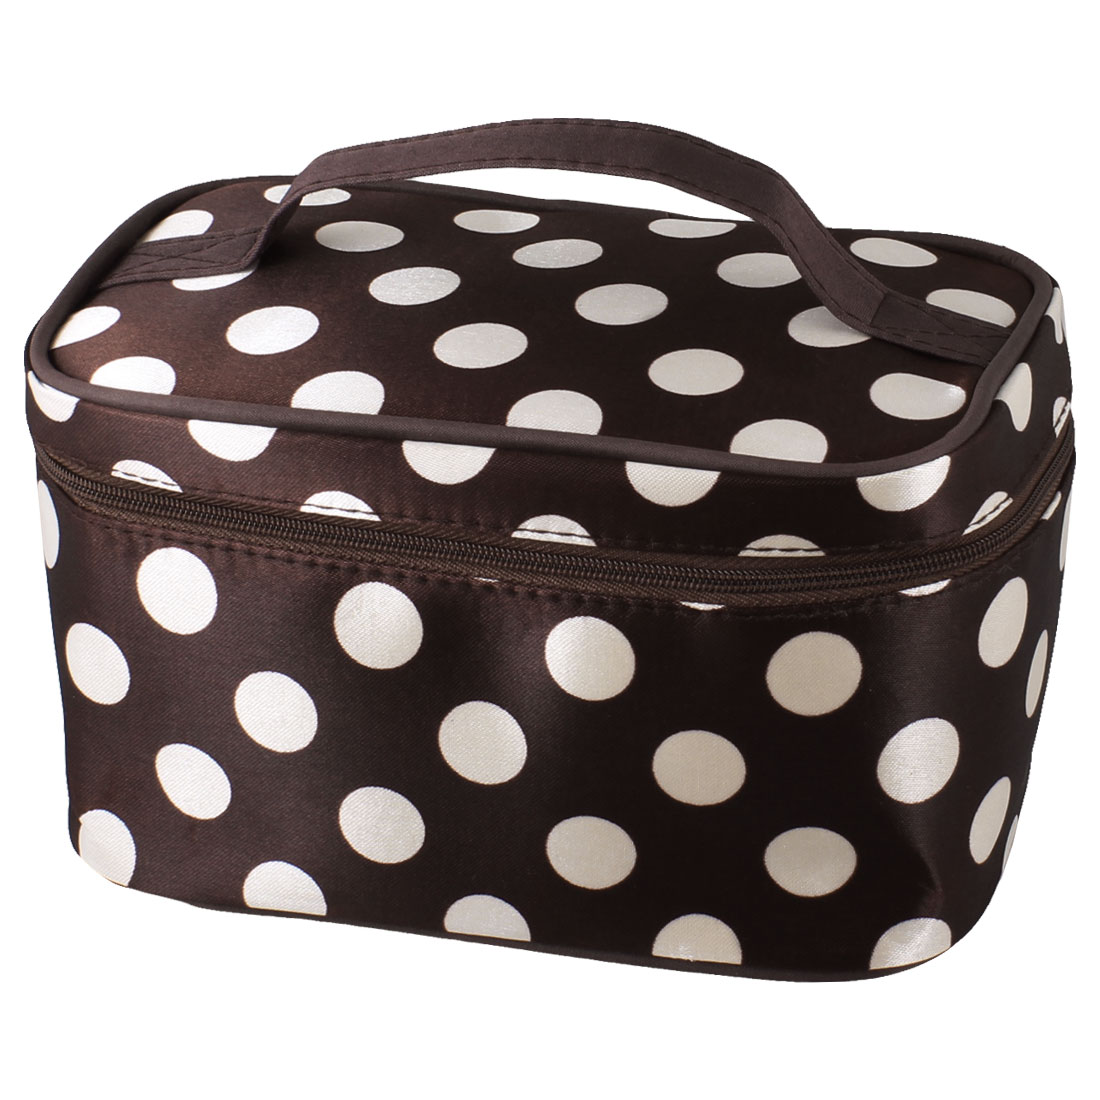 Zipper Closure White Dots Pattern Dark Brown Cosmetic Hand Case Bag